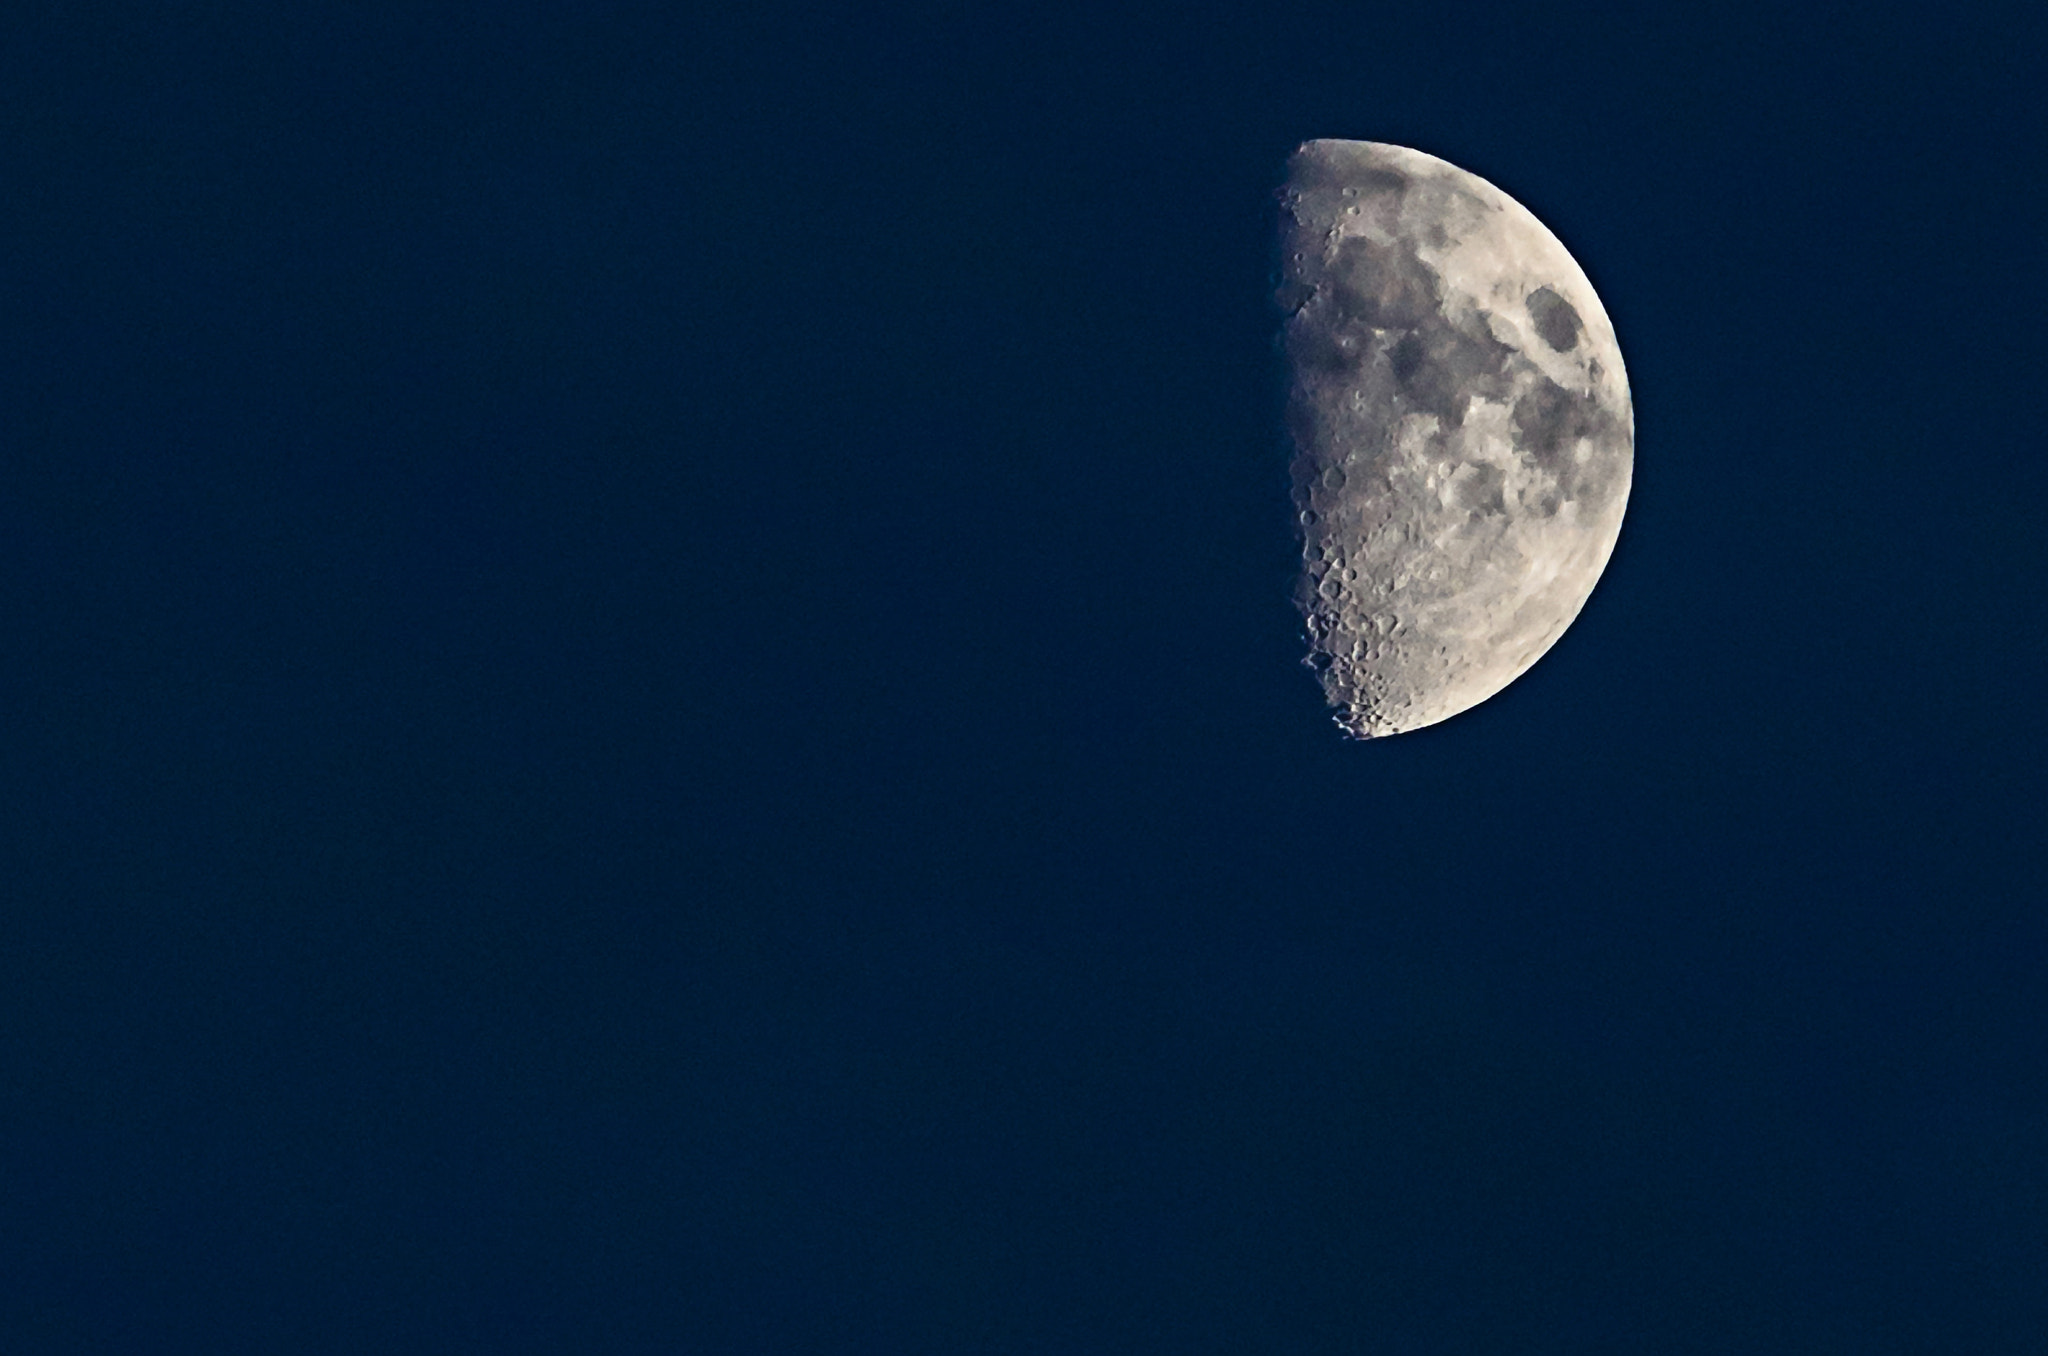 Photograph Moon after sunset in the Tirrenian sea. by Martin Balo on 500px